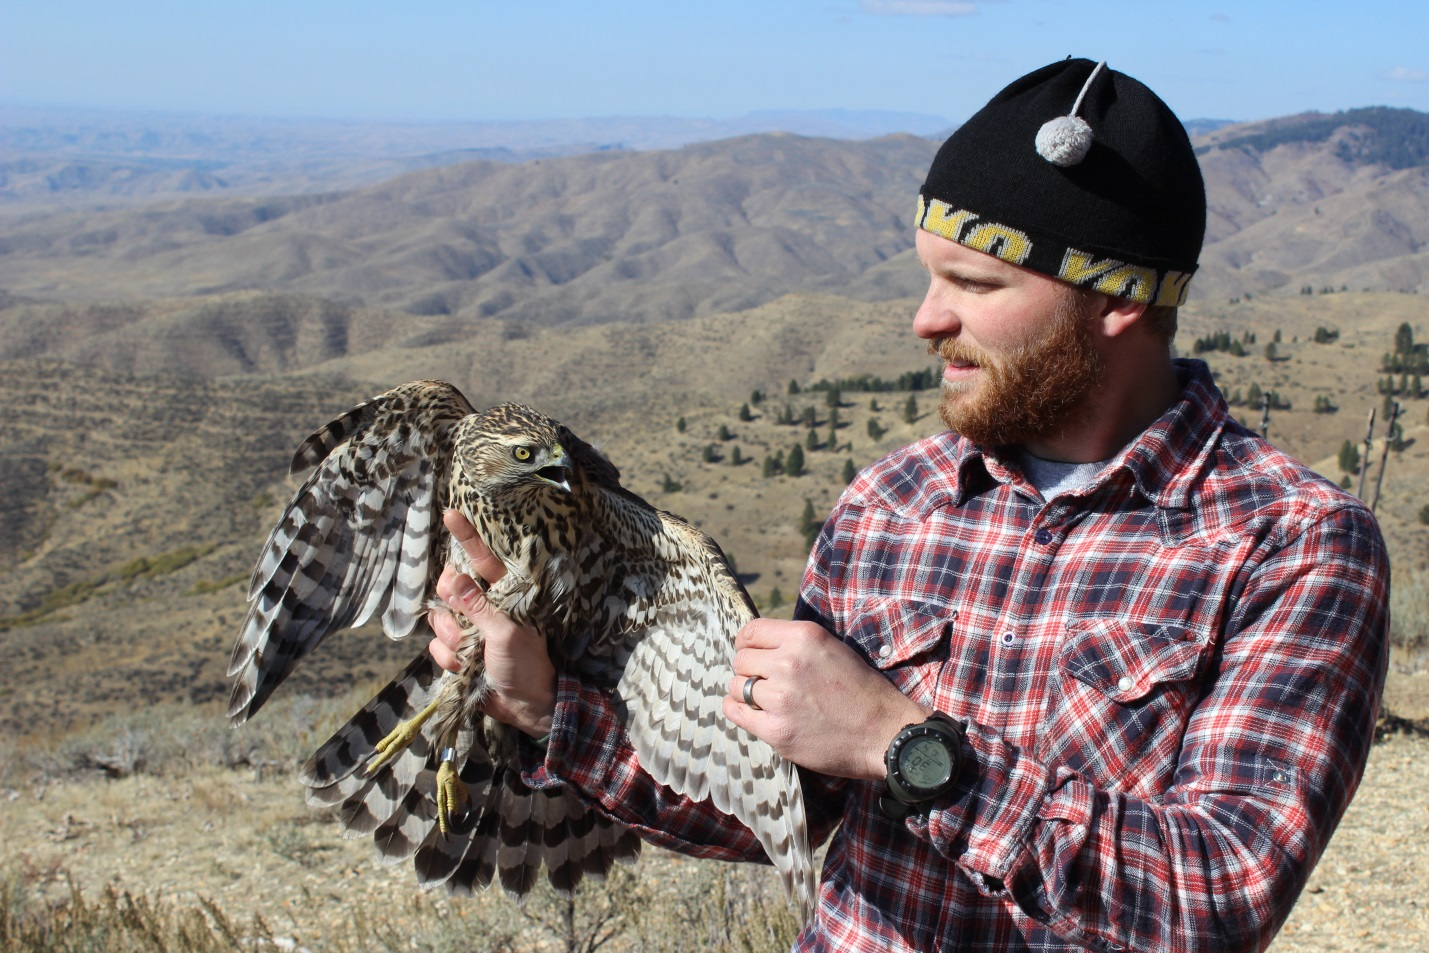 Matt Stuber holding a hatch-year northern goshawk captured and banded at the Intermountain Bird Observatory's Lucky Peak Field Station, just outside of Boise, ID